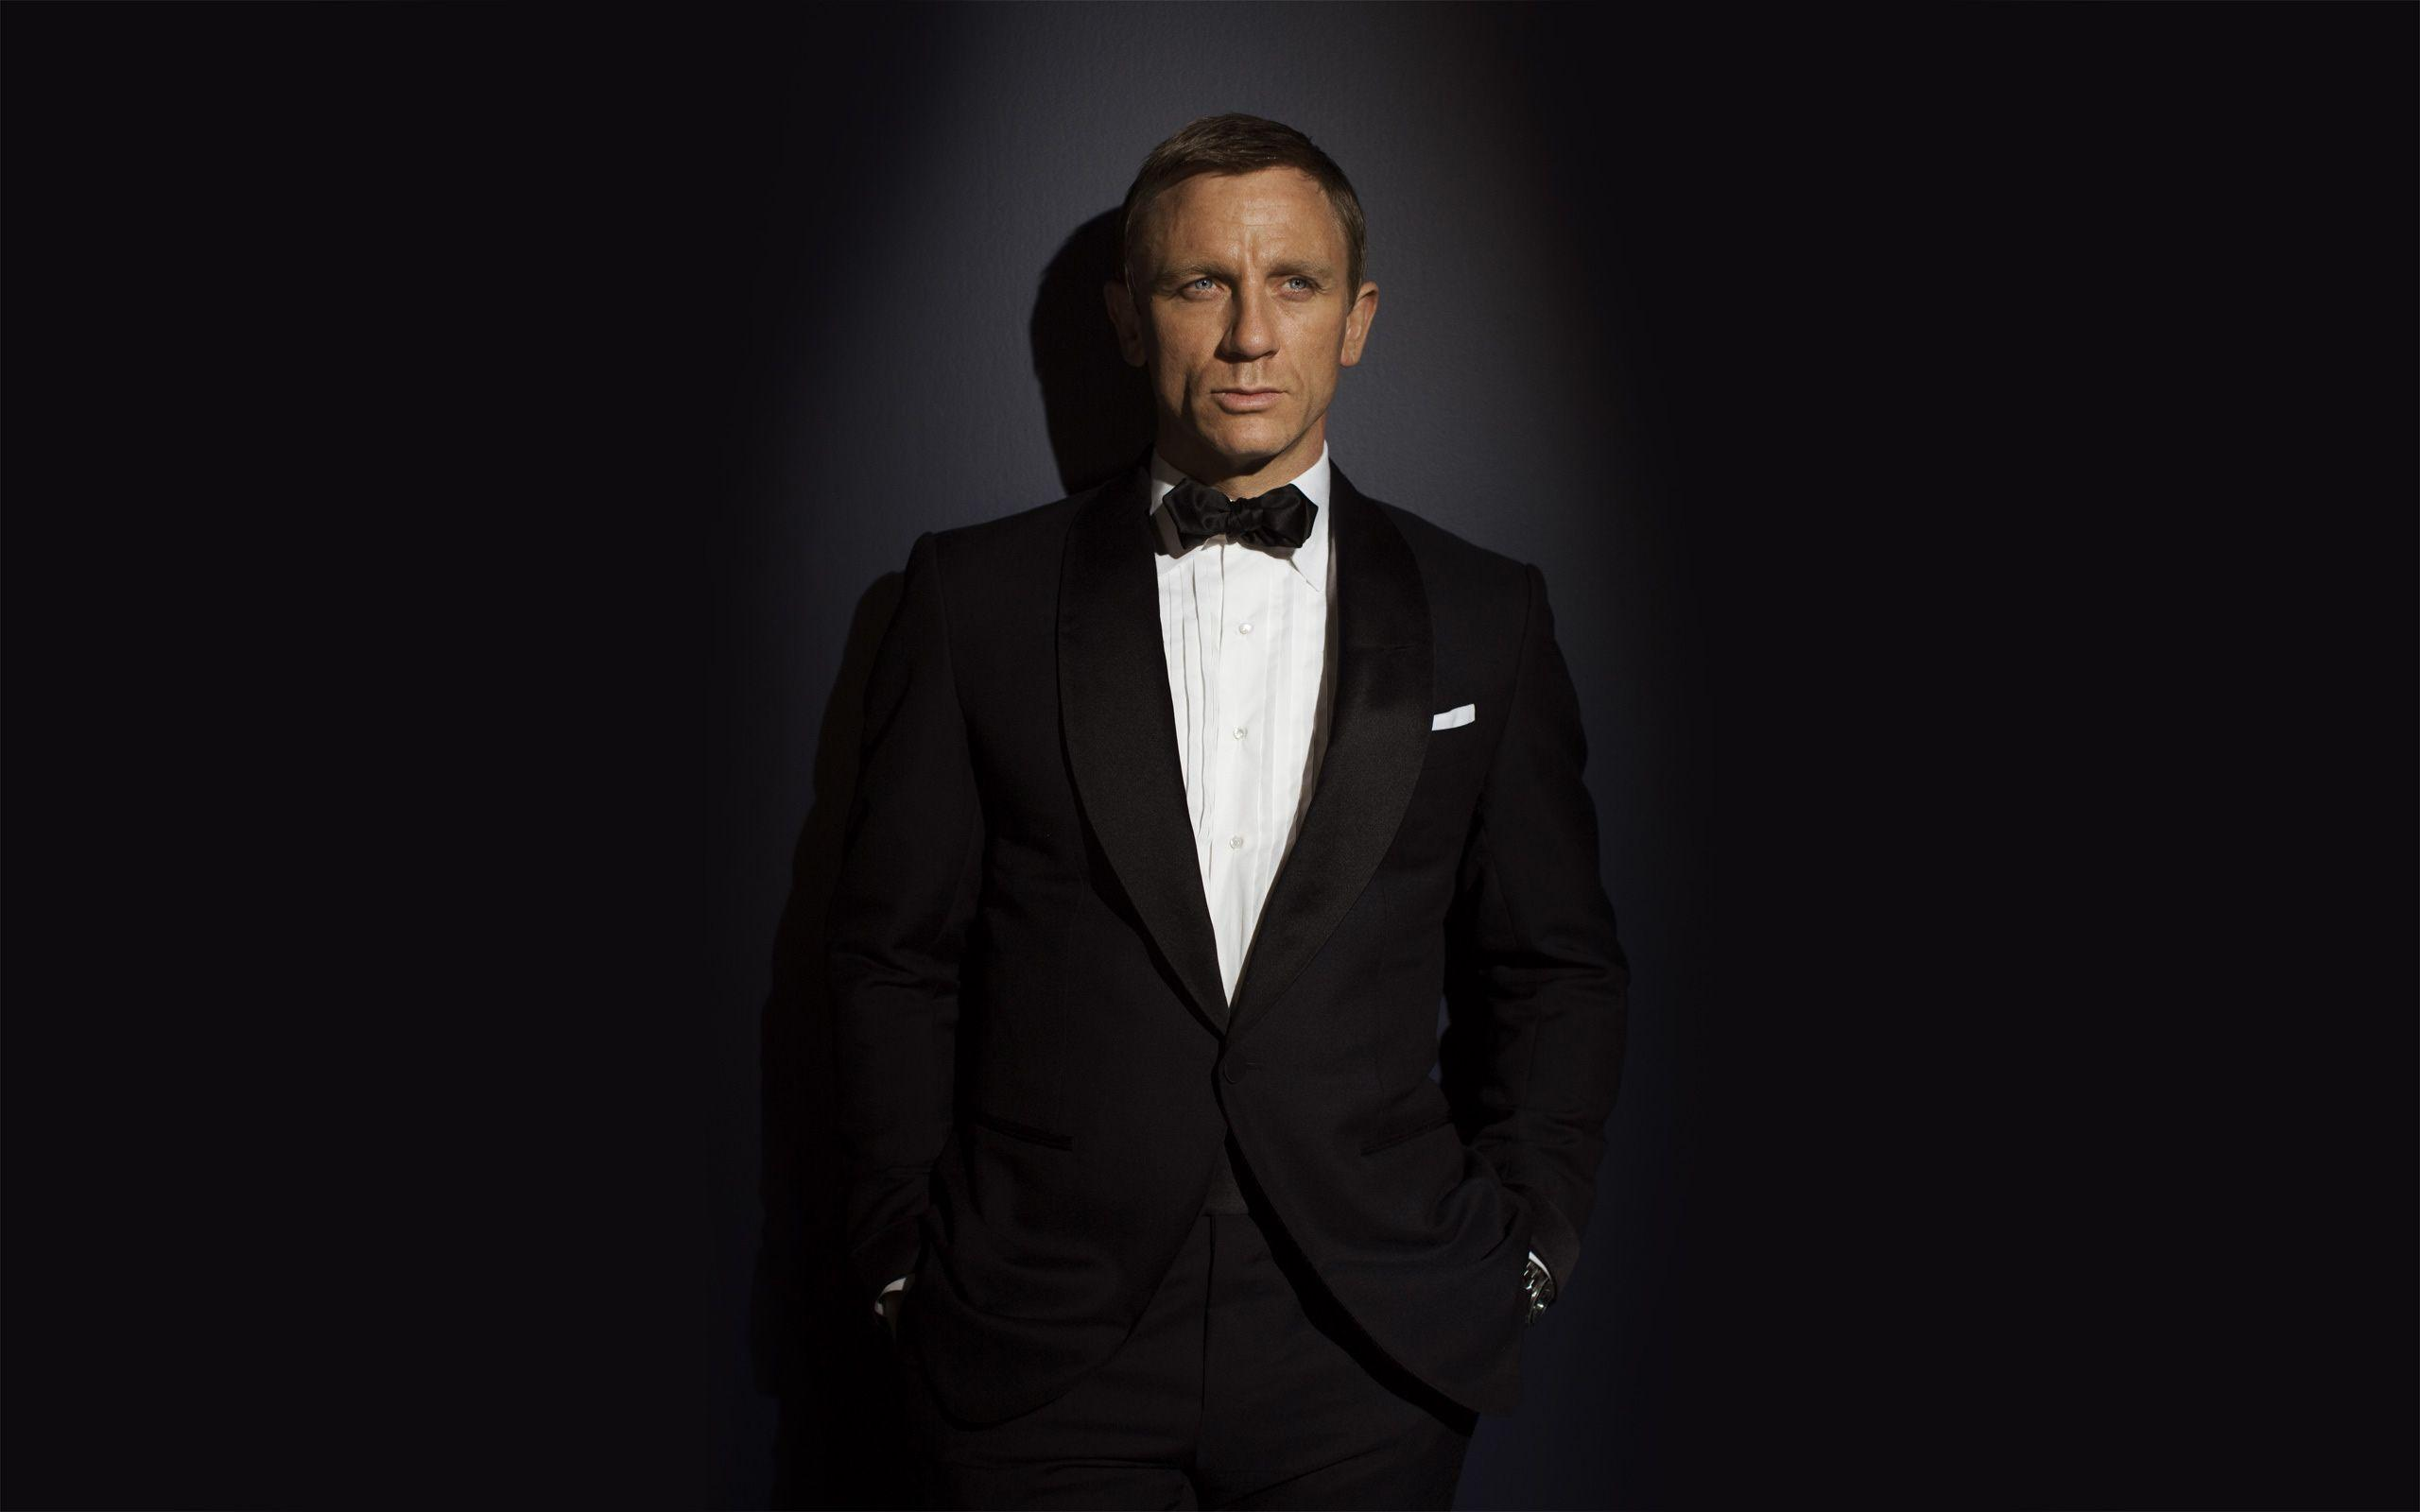 James bond daniel craig wallpapers wallpaper cave - James bond images hd ...